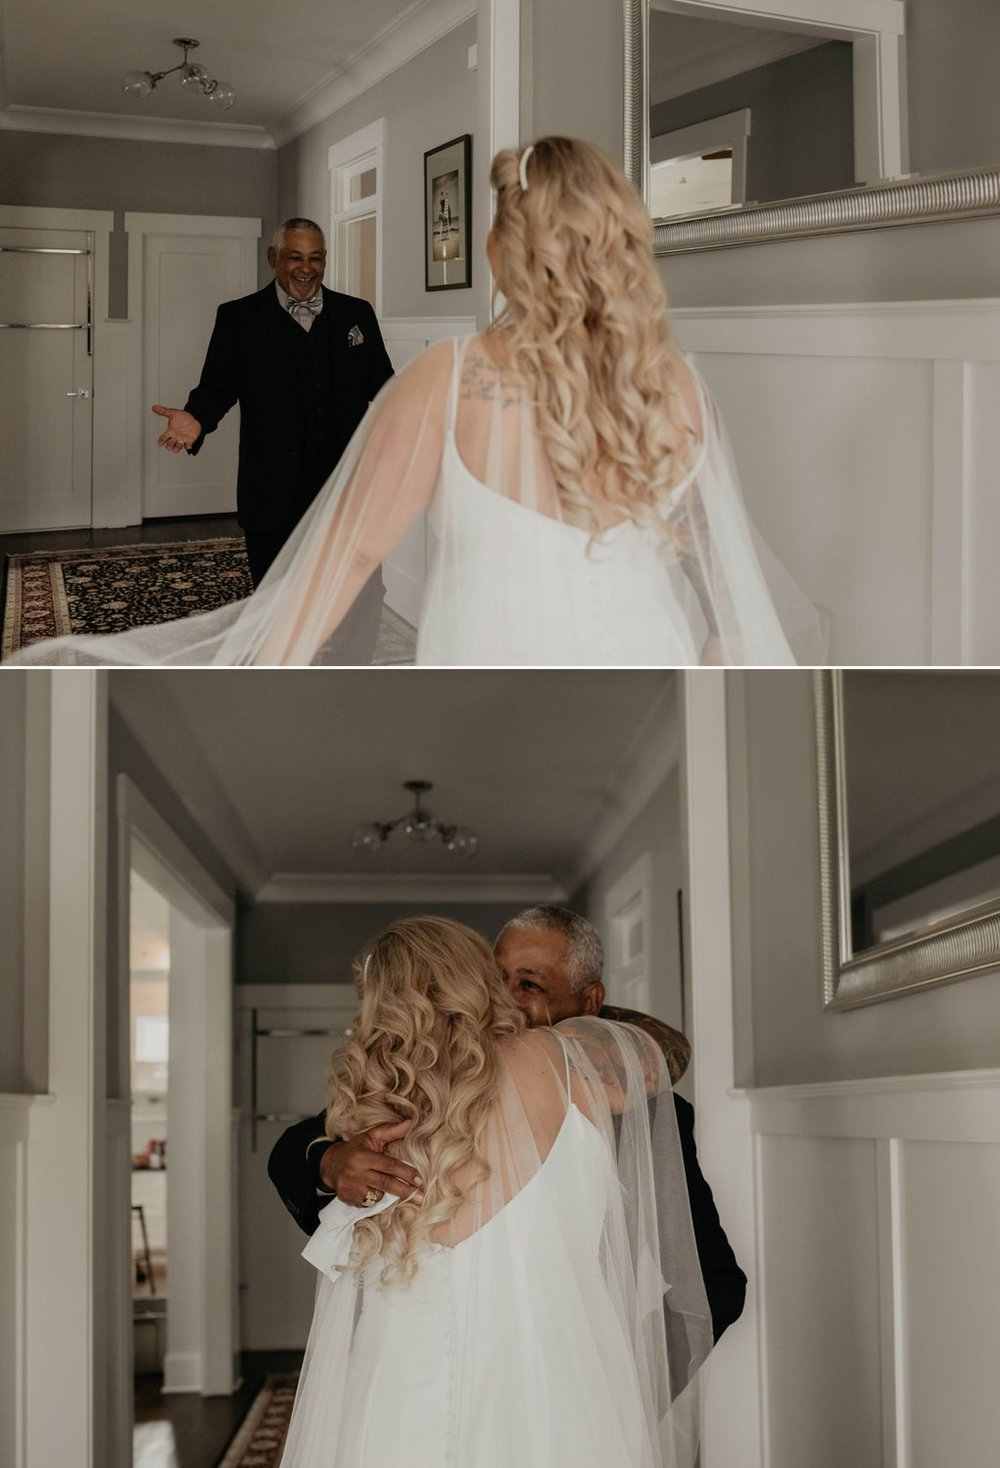 First look between bride and her father - Bride in an Allure Bridals Mermaid Gown  - Matt Smarsh and Johanna Dye - suites by the black tux - Raleigh North Carolina Urban Edgy Downtown Wedding - suits by the black tux